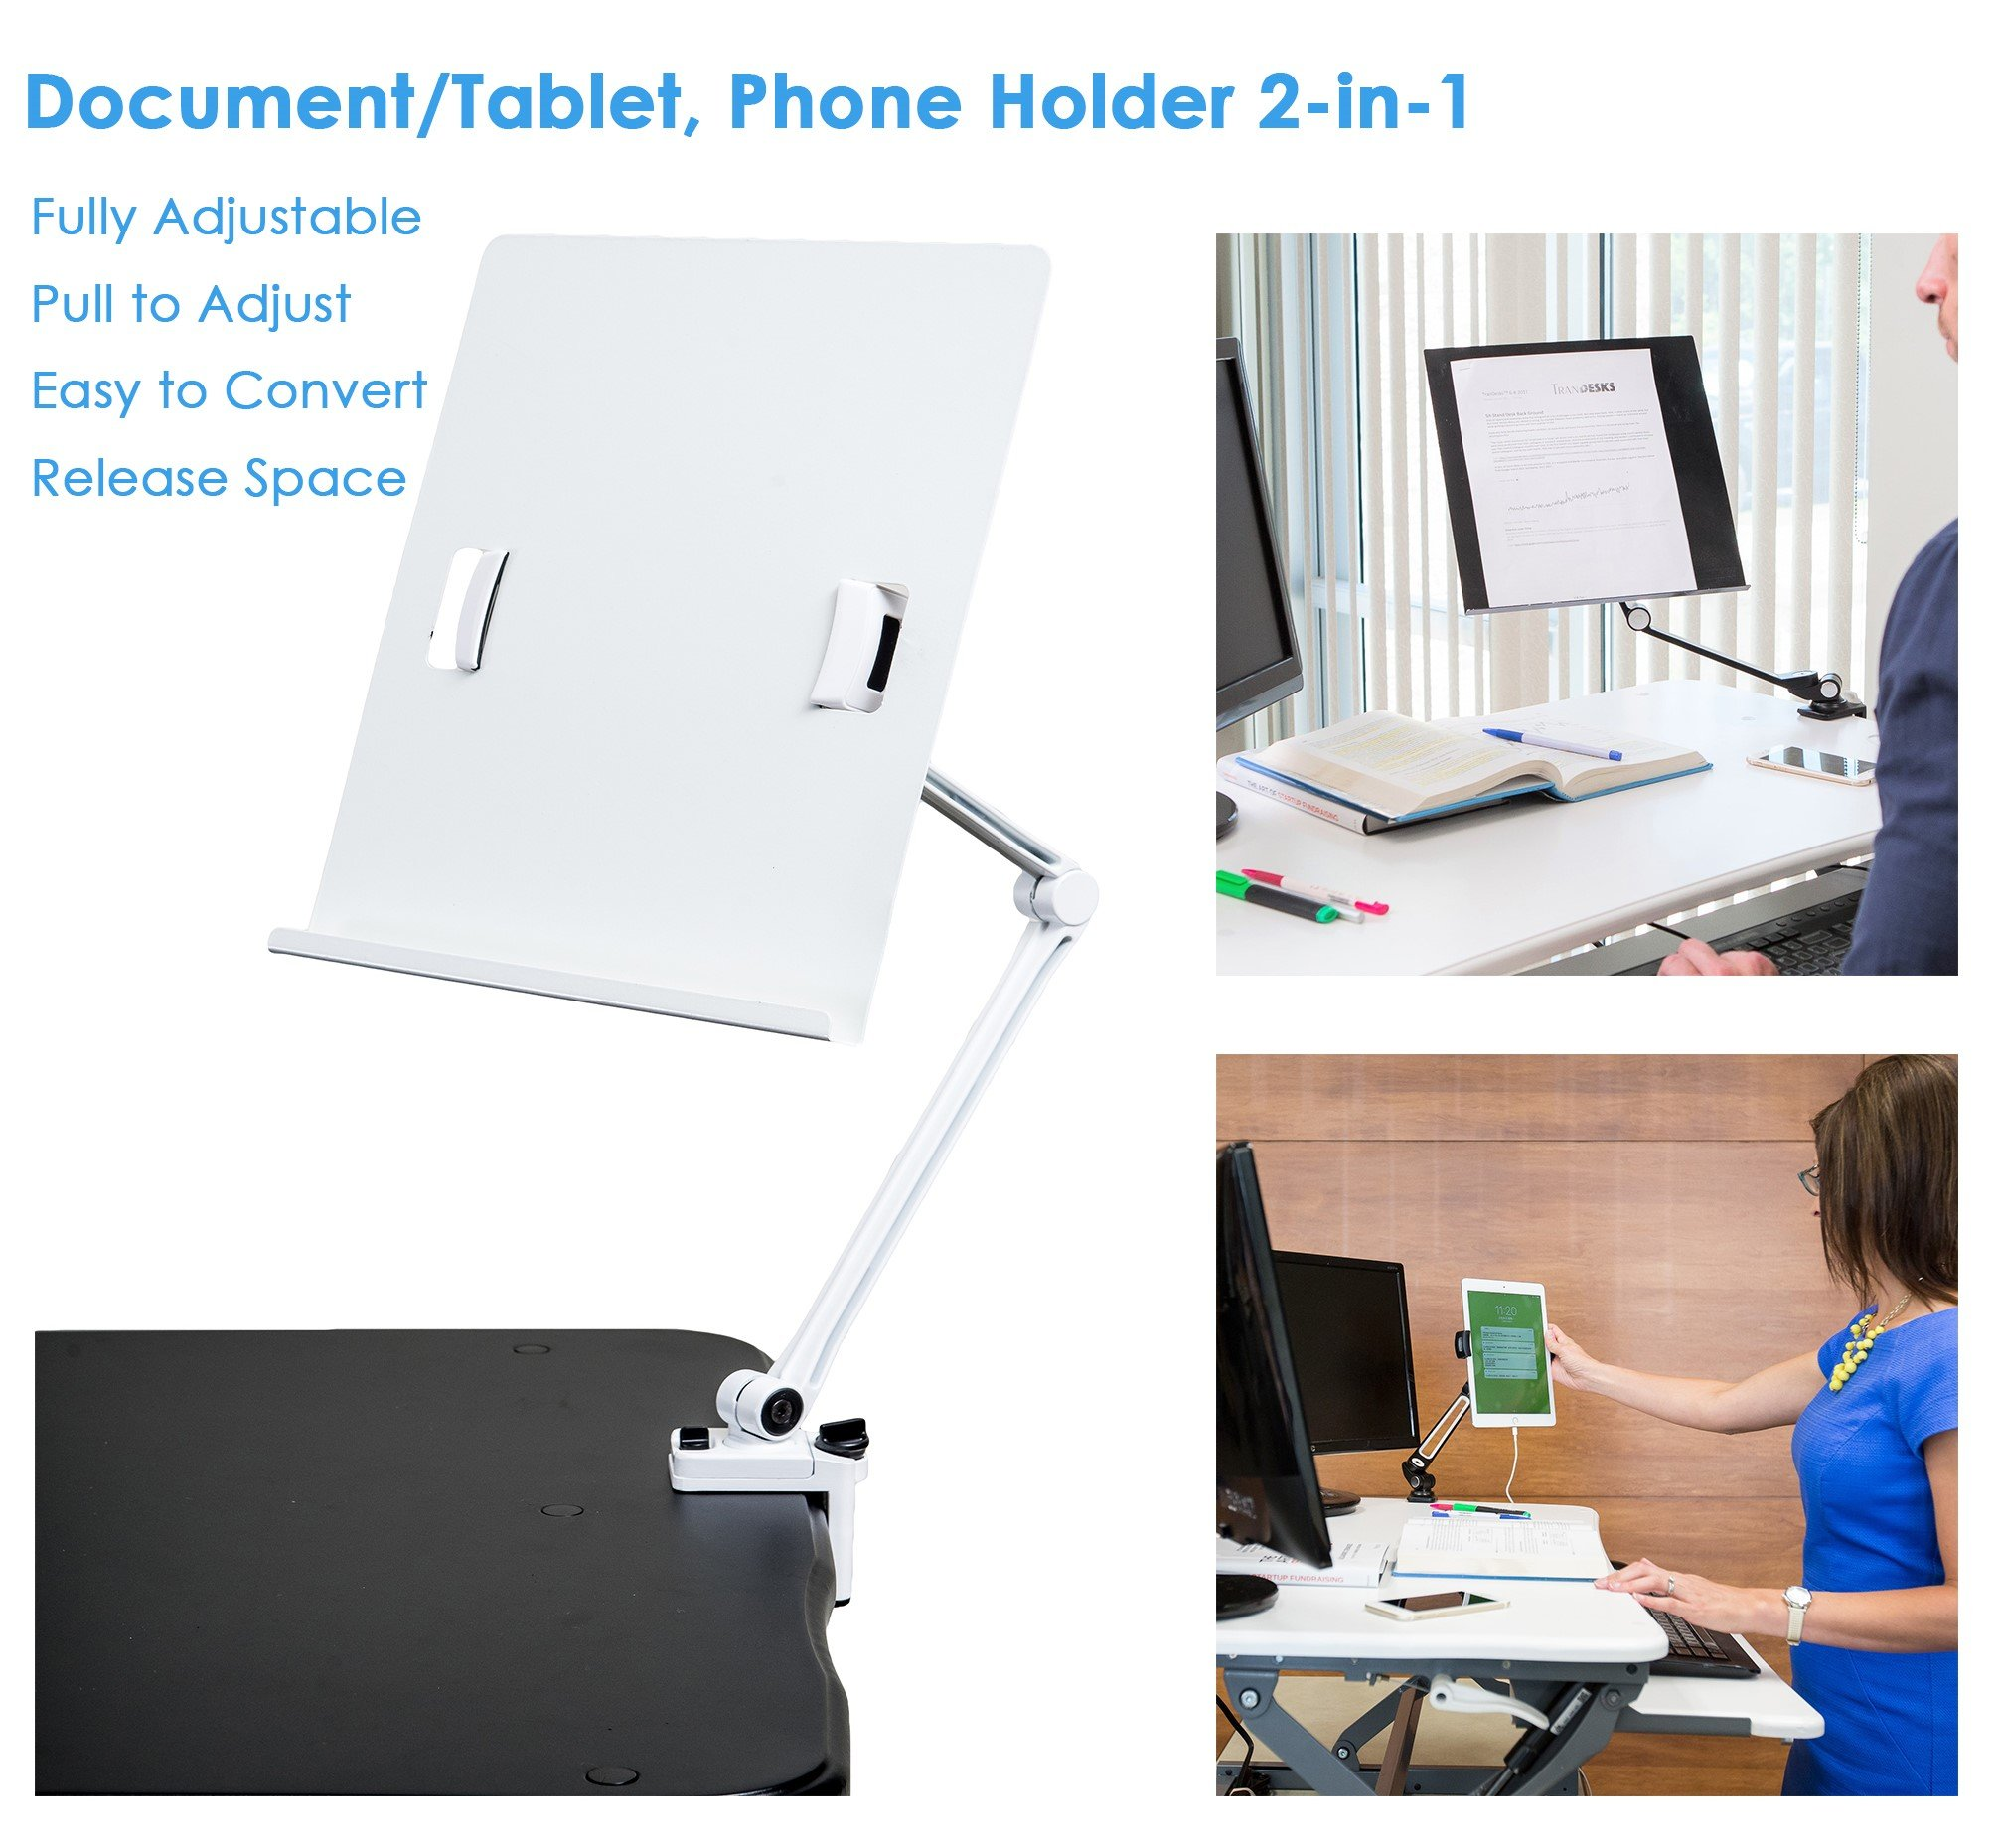 TrenDesks Document Copy Holder and Tablet/Cellphone Holder 2-in-1 (White), Full Motion, Pull to Adjust Height, Angle and Direction